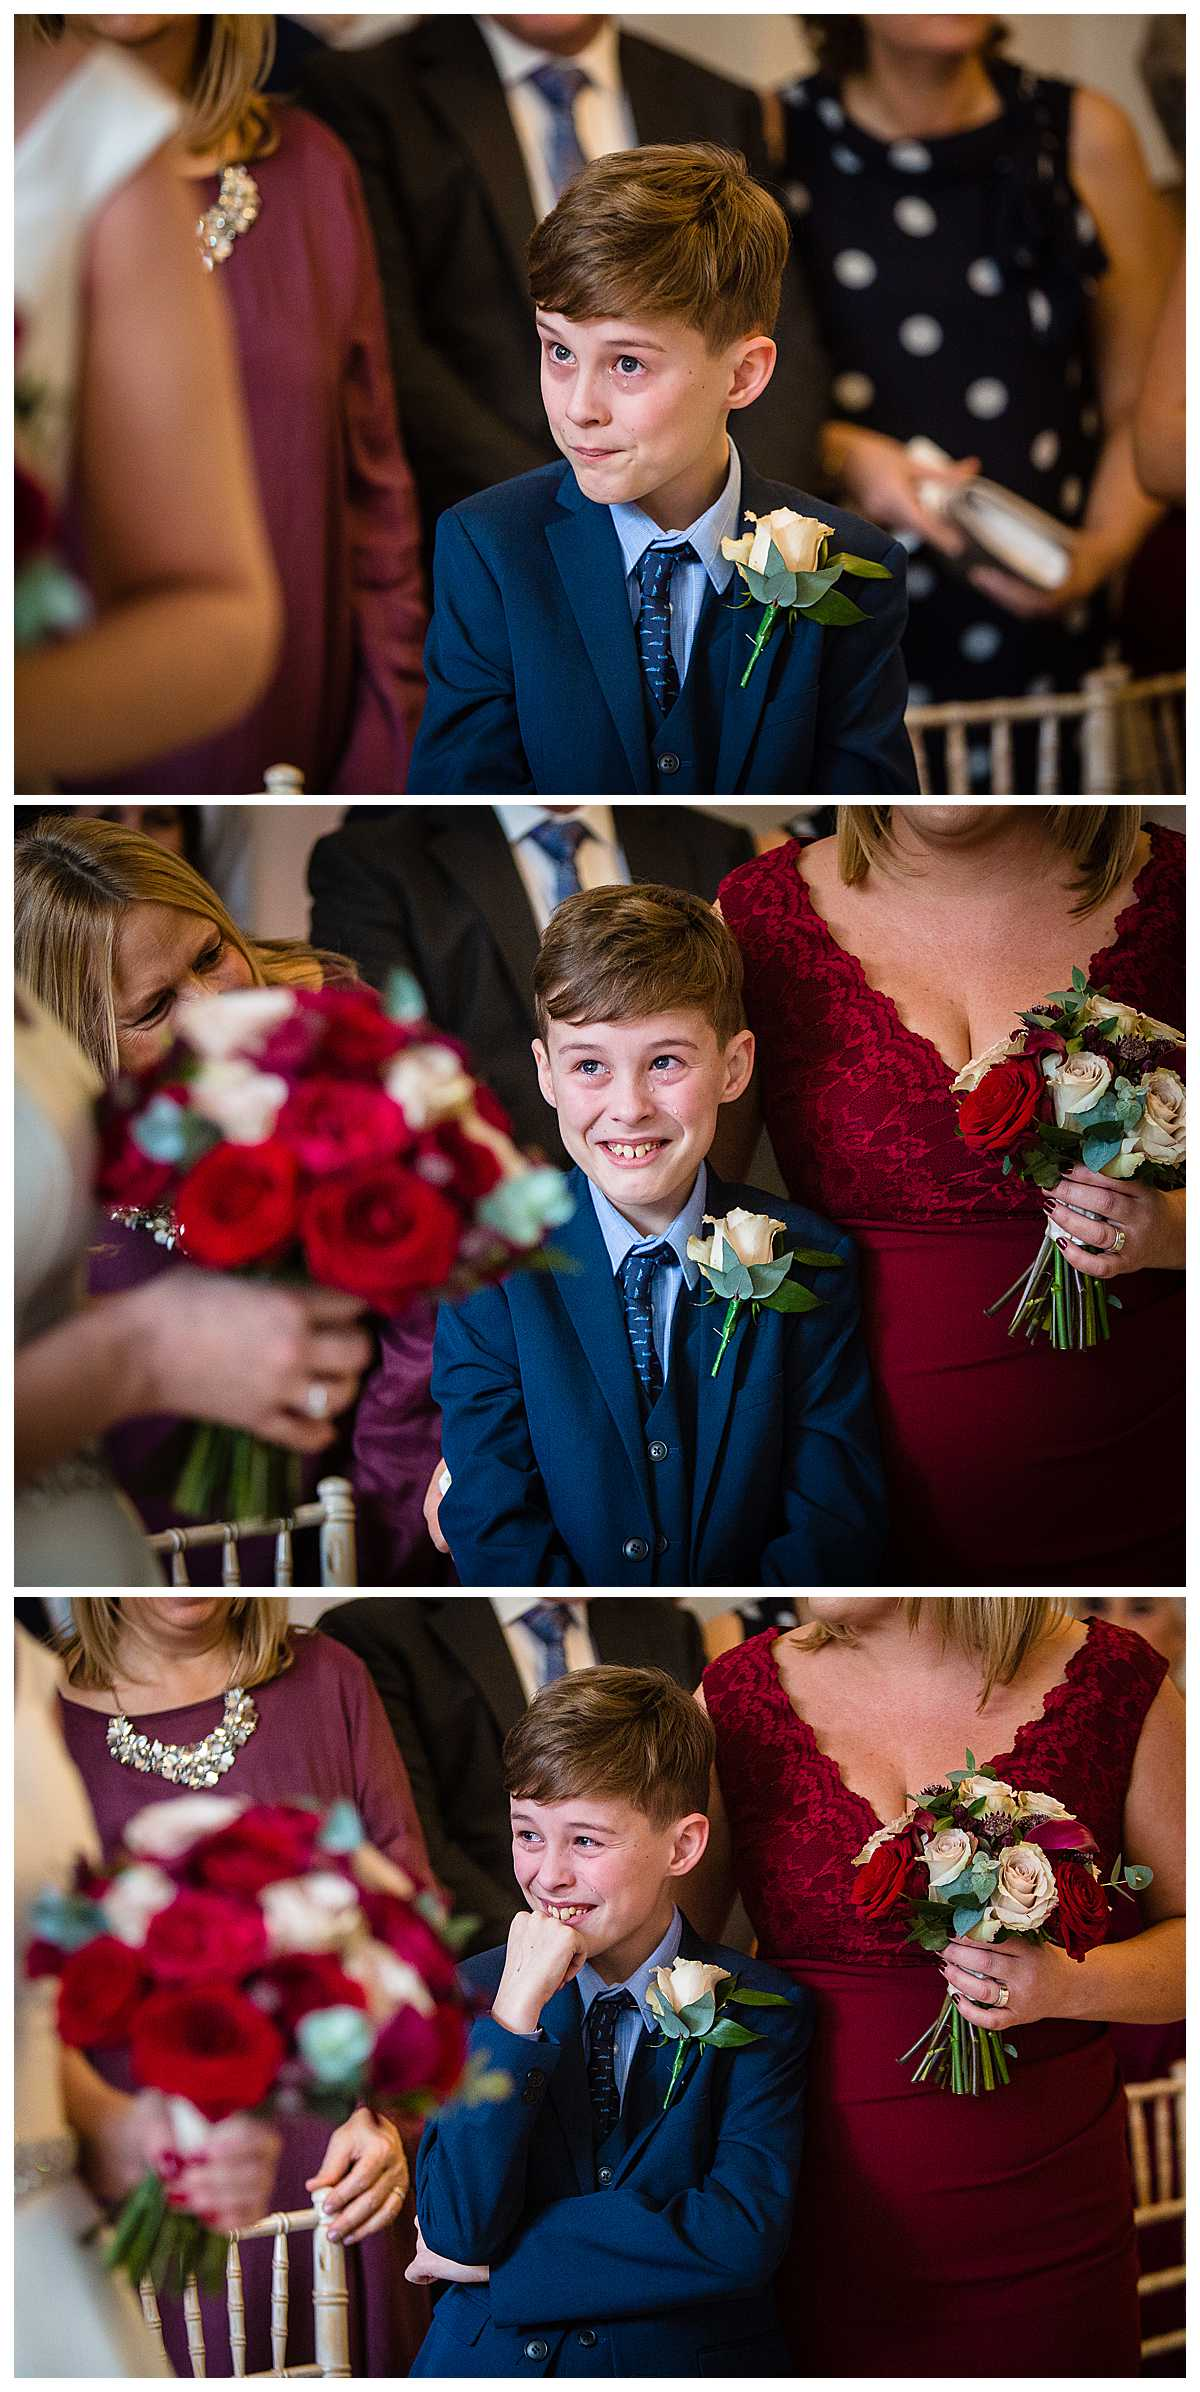 emotional page boy as he sees his mum for the first time as a bride. Bursting with emotion of happiness and pride